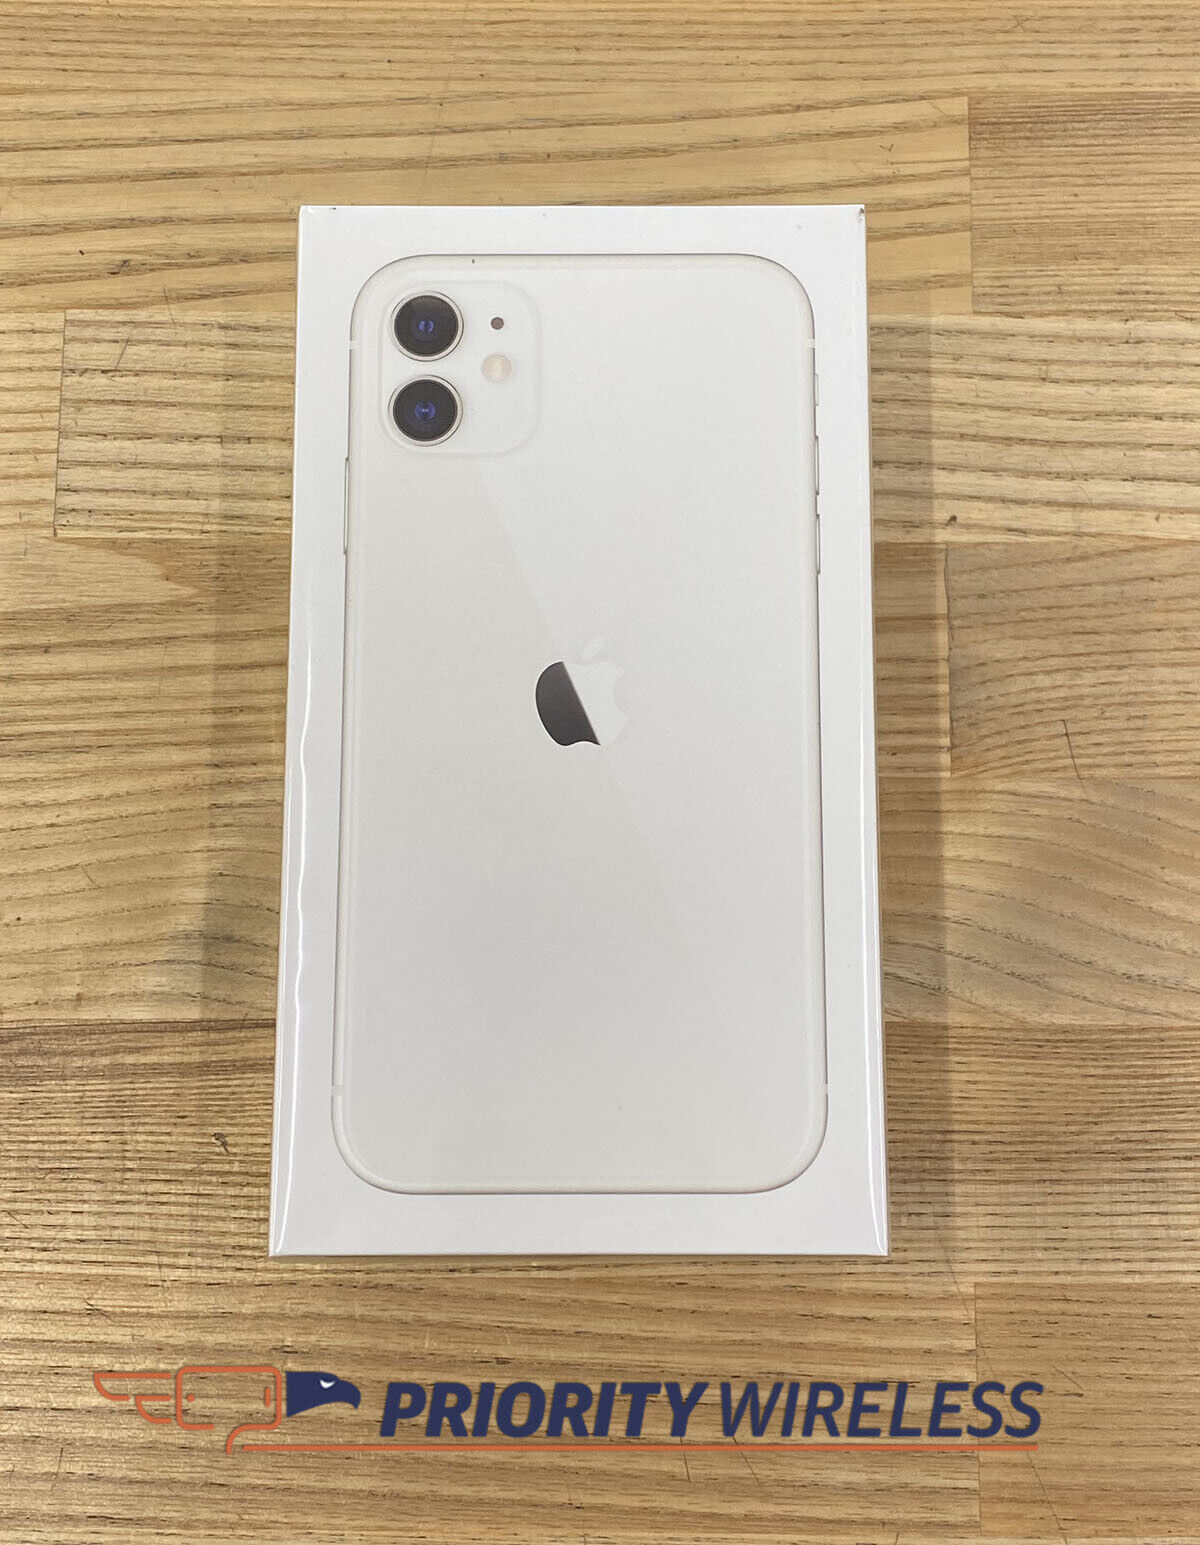 Apple iPhone 11 A2111 64/128/256GB Unlocked Brand New. Buy it now for 674.99